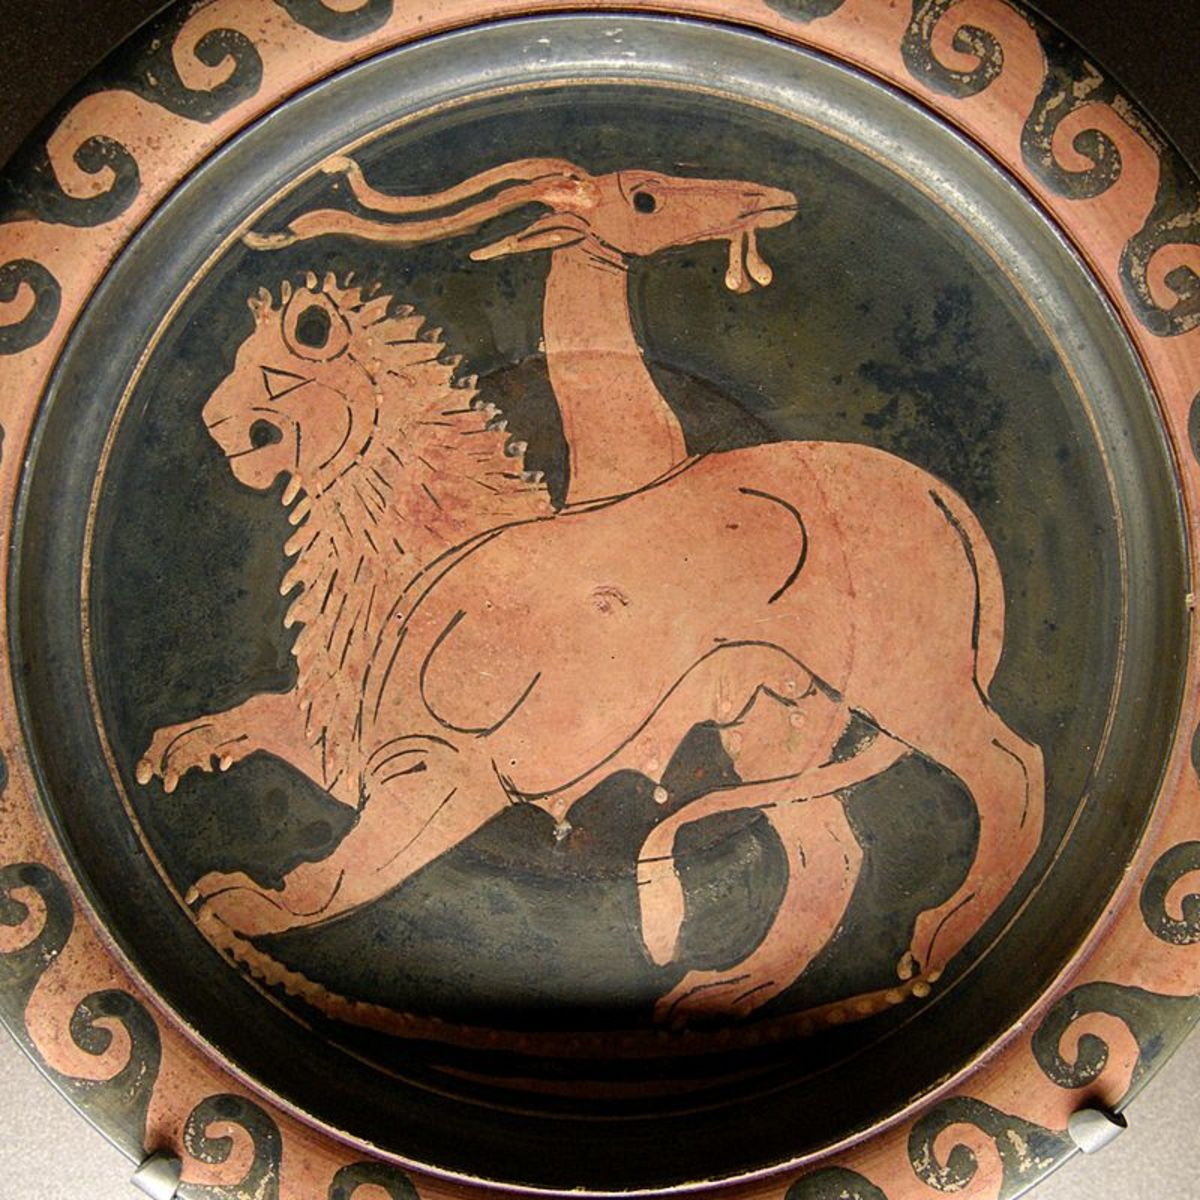 A plate depicting a Chimera